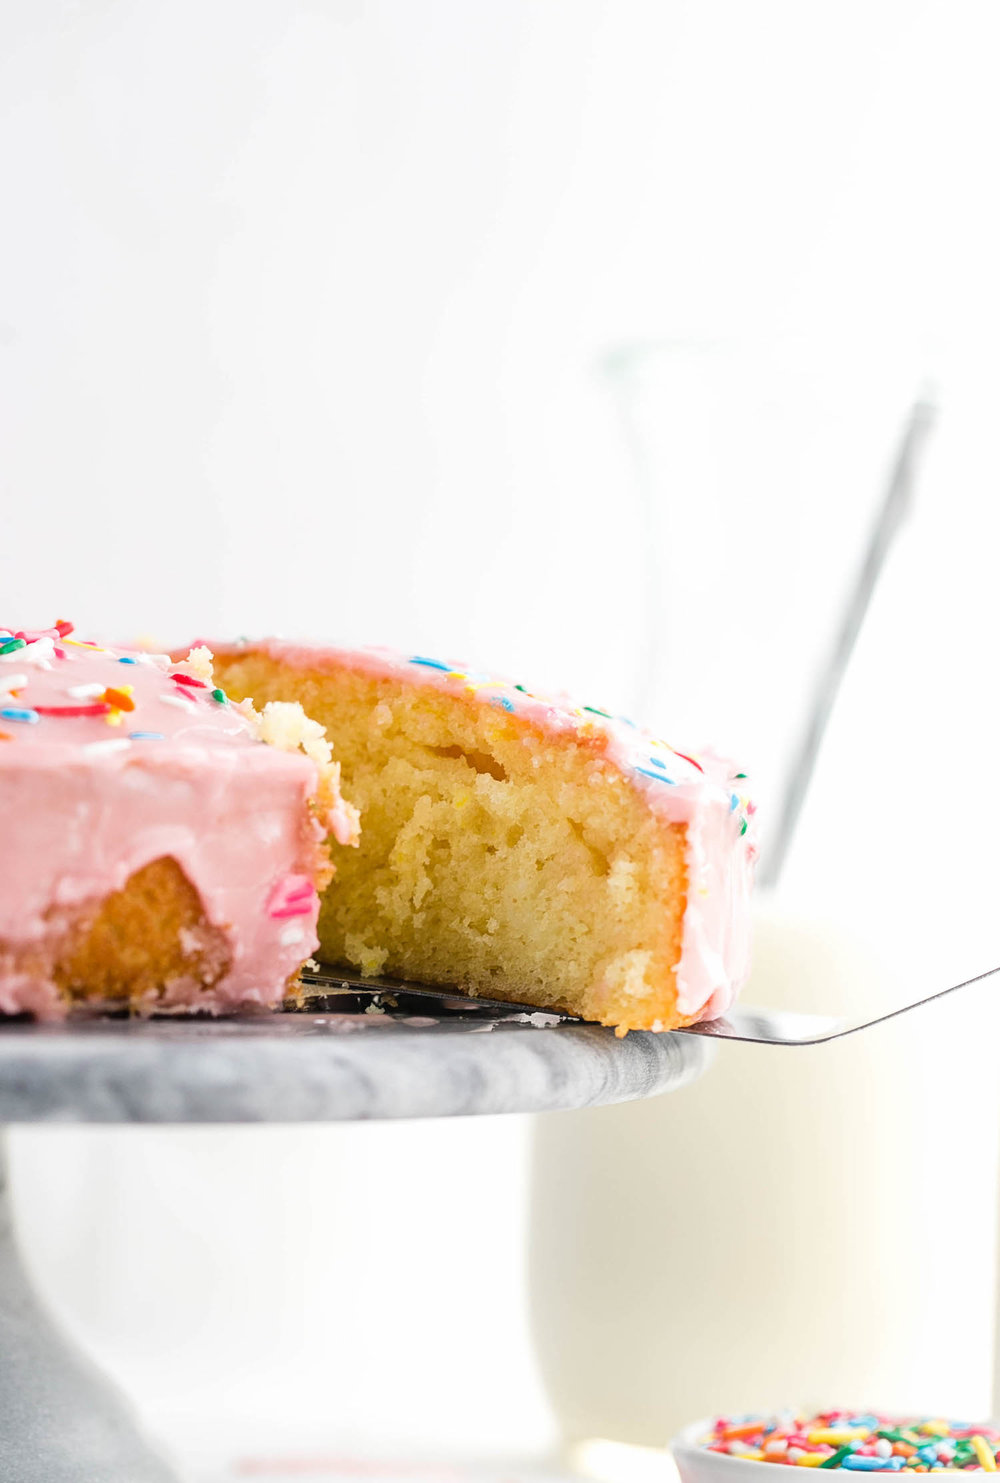 Basic Glazed Vanilla Cake: soft, fluffy, moist, dairy-free vanilla round cake with a classic vanilla glaze. Quick and easy! | TrufflesandTrends.com